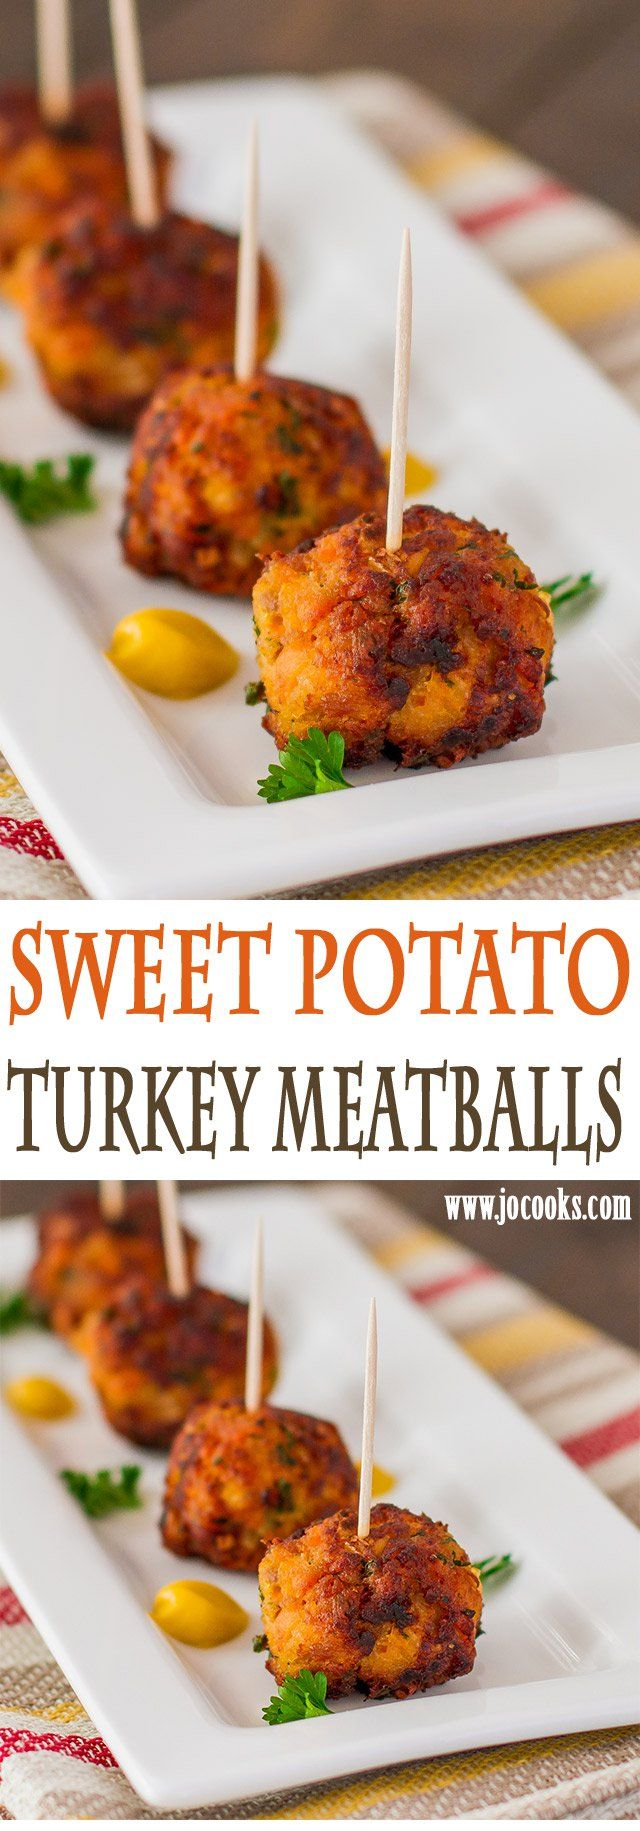 Sweet Potato Turkey Meatballs – an interesting combination of ingredients gives you the most superb meatballs. Perfect little appetizers.